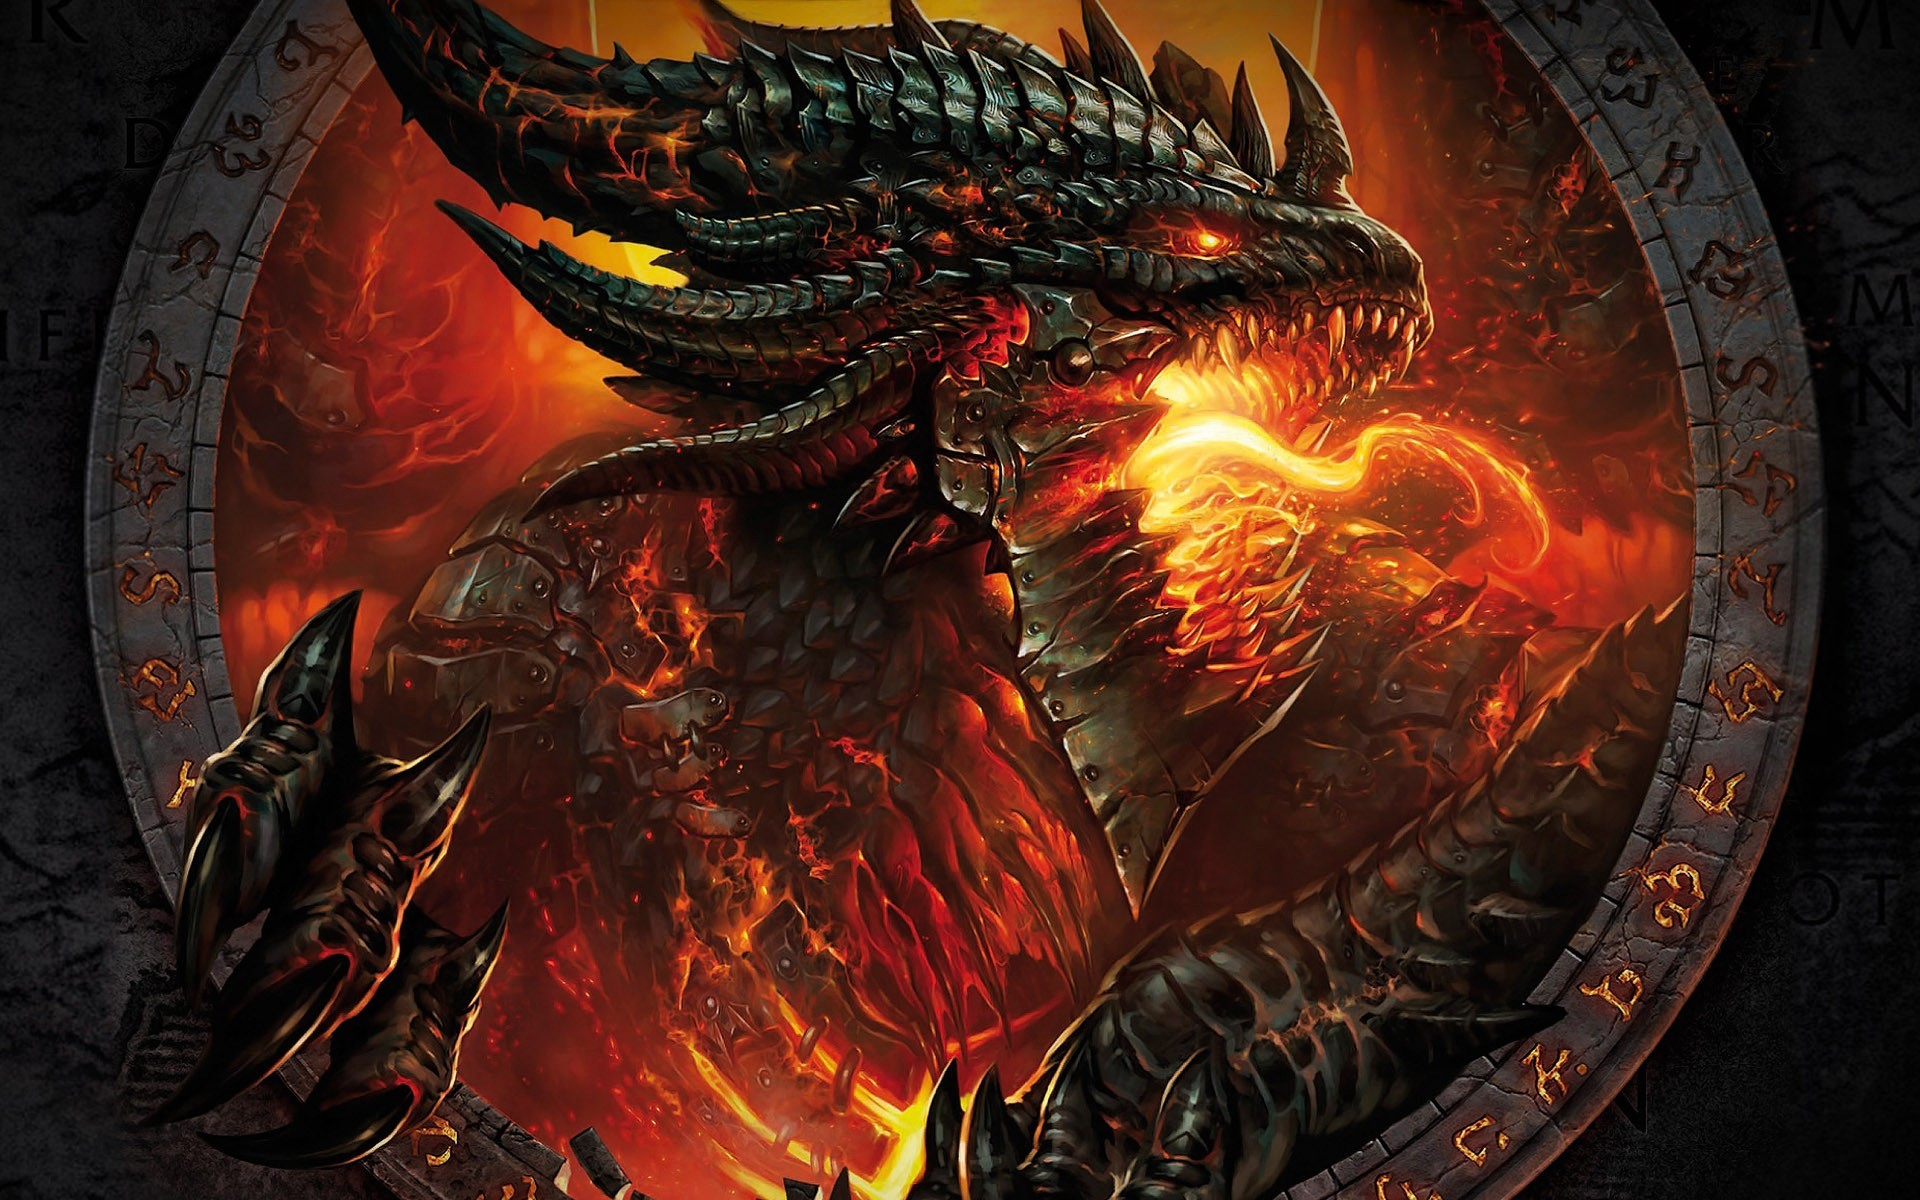 Amazing Dragon Wallpapers 1280×800 Awesome Dragon Backgrounds (44 Wallpapers)    Adorable Wallpapers   Wallpapers   Pinterest   Wallpaper, Dragons and Hd  …